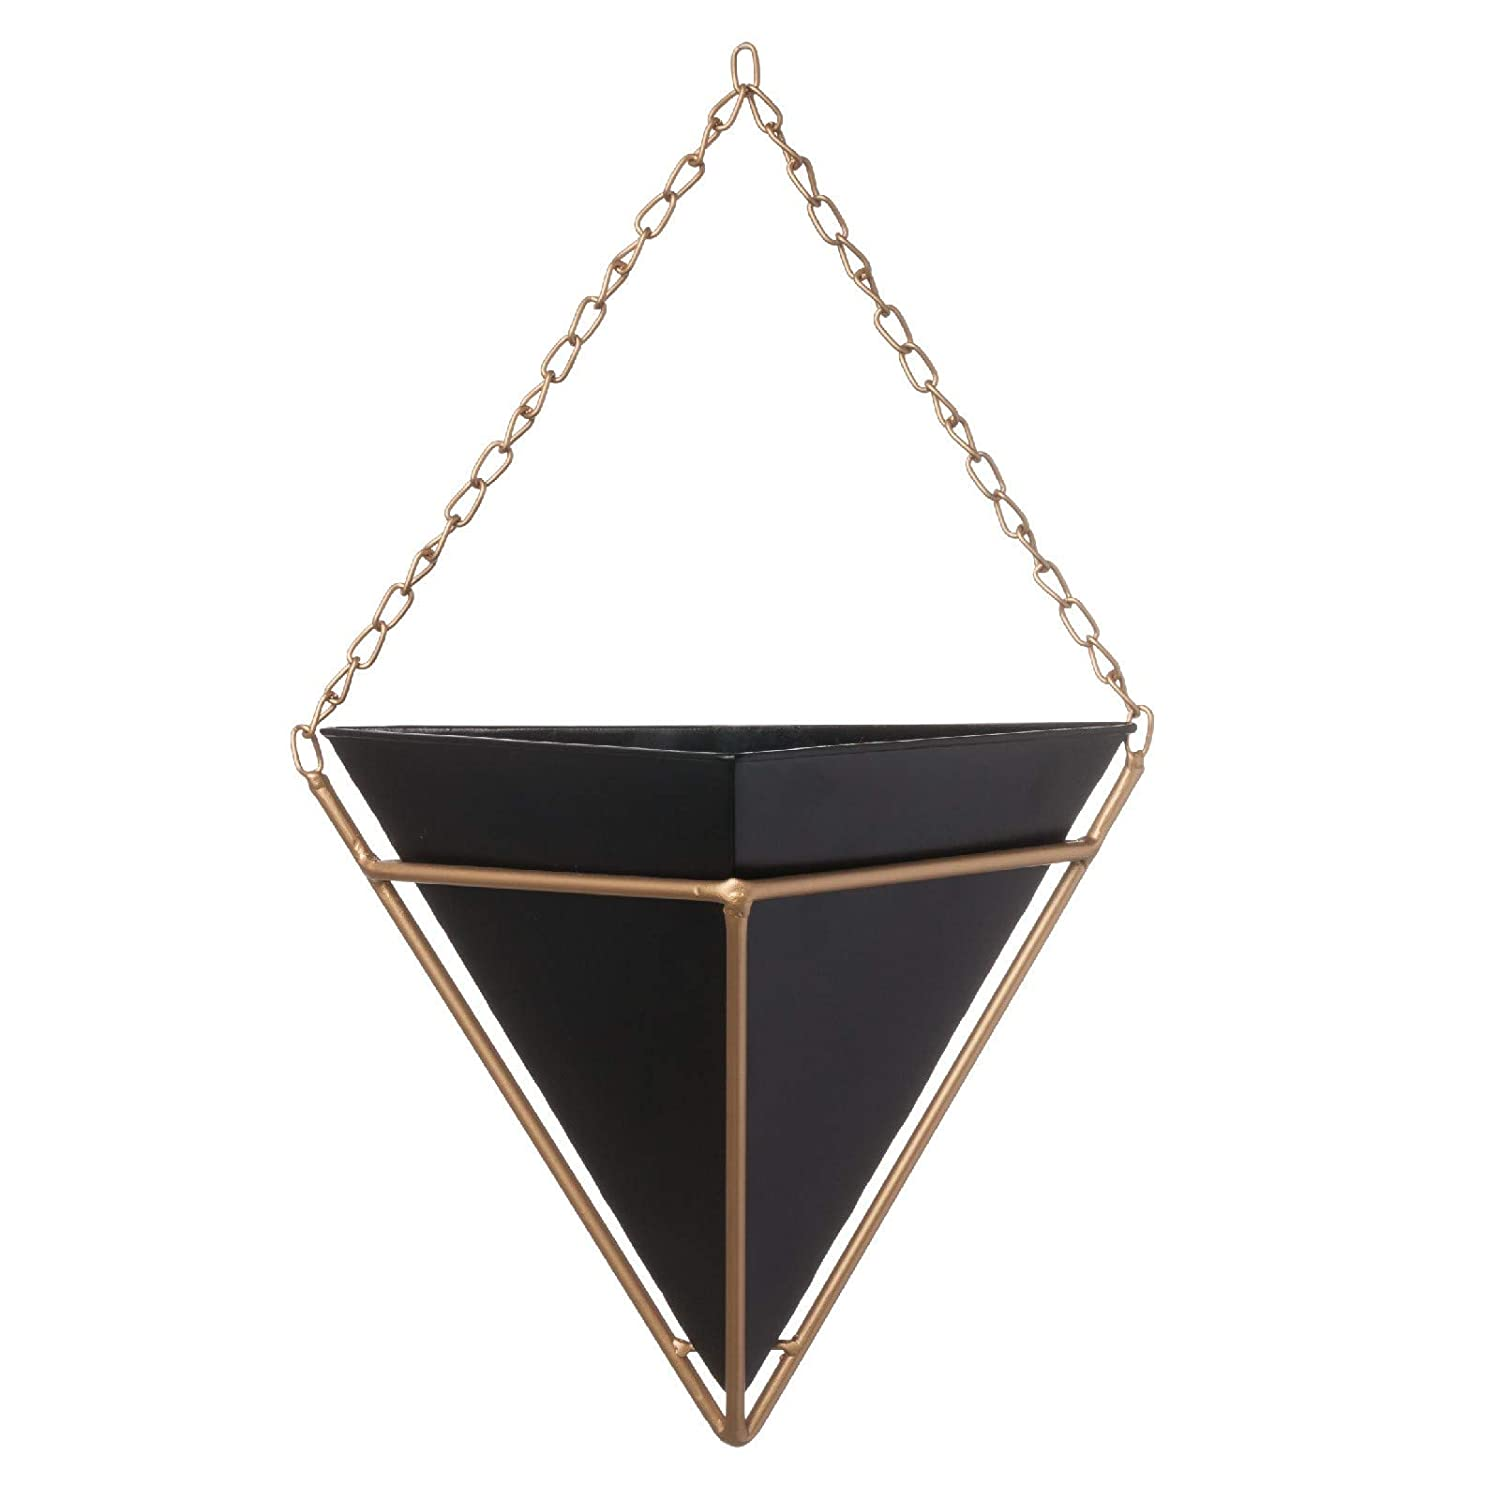 Black Gold Wall Pocket Hanging Triangle Planters Set of 2 Geometric with Gold Chain and Frame